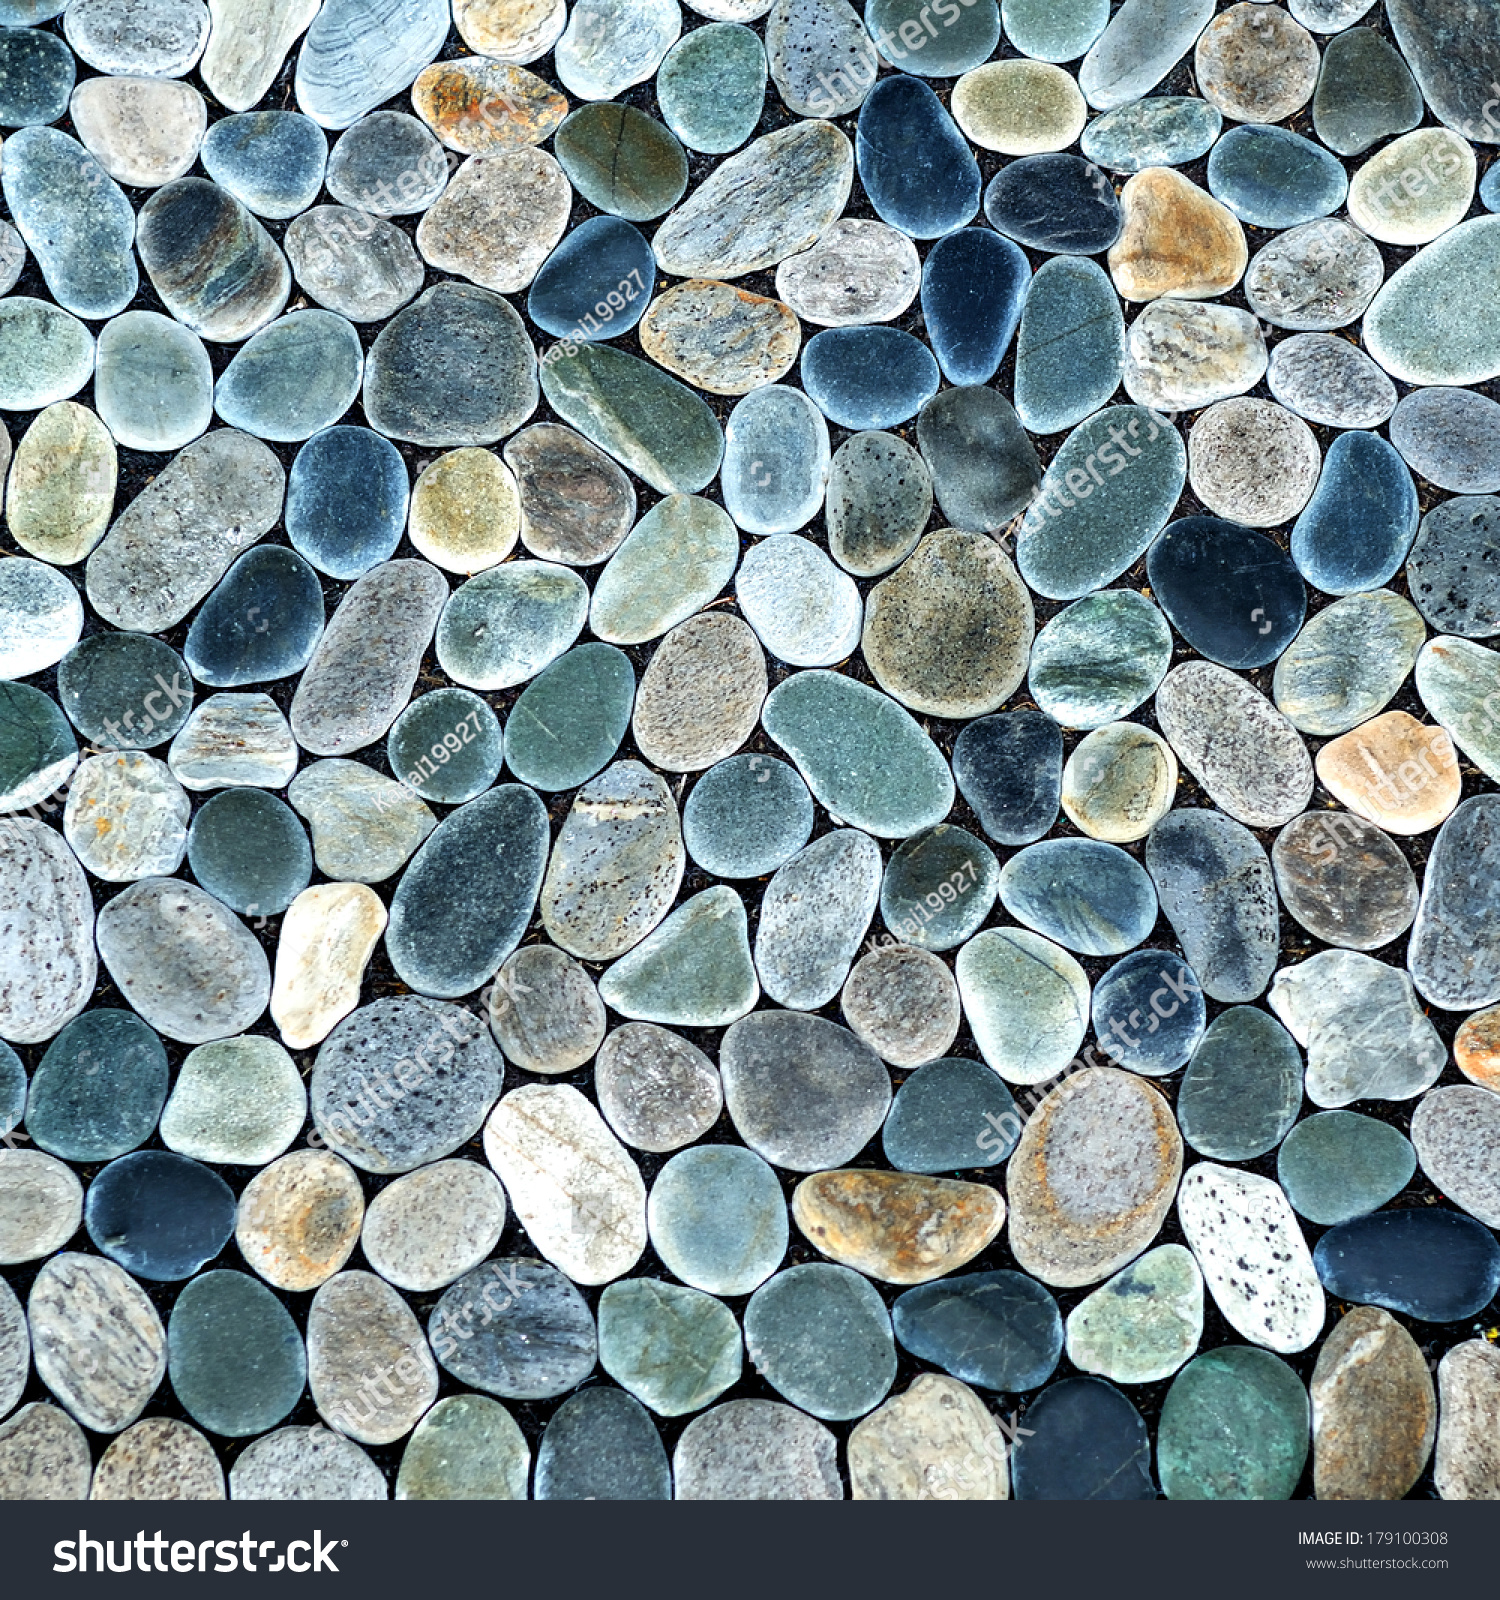 Smooth shaped white stones surface texture background stock photo - Natural Stone Pebble Texture Background Surface Wall Decoration Backdrop Pattern Rock Garden